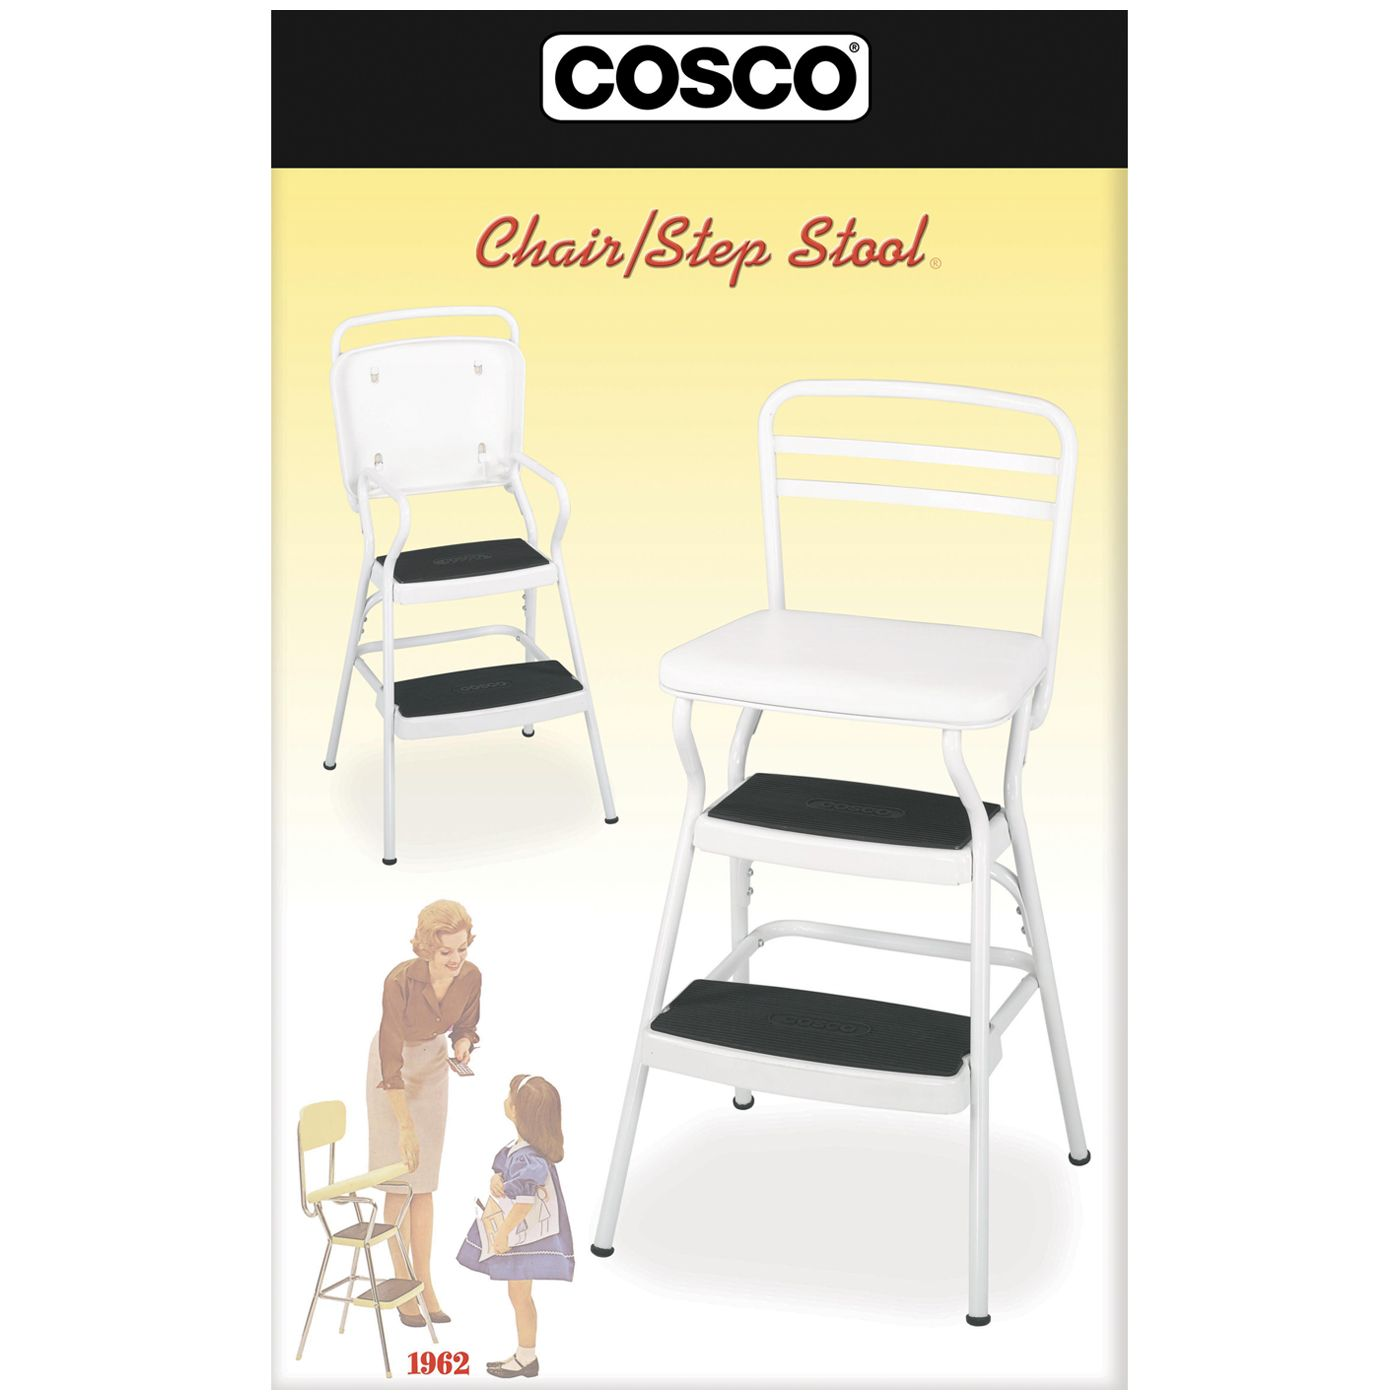 cosco retro counter chair step stool live electric execution shop home and office products 11130whte with lift up seat at atg stores browse our bar stools all free